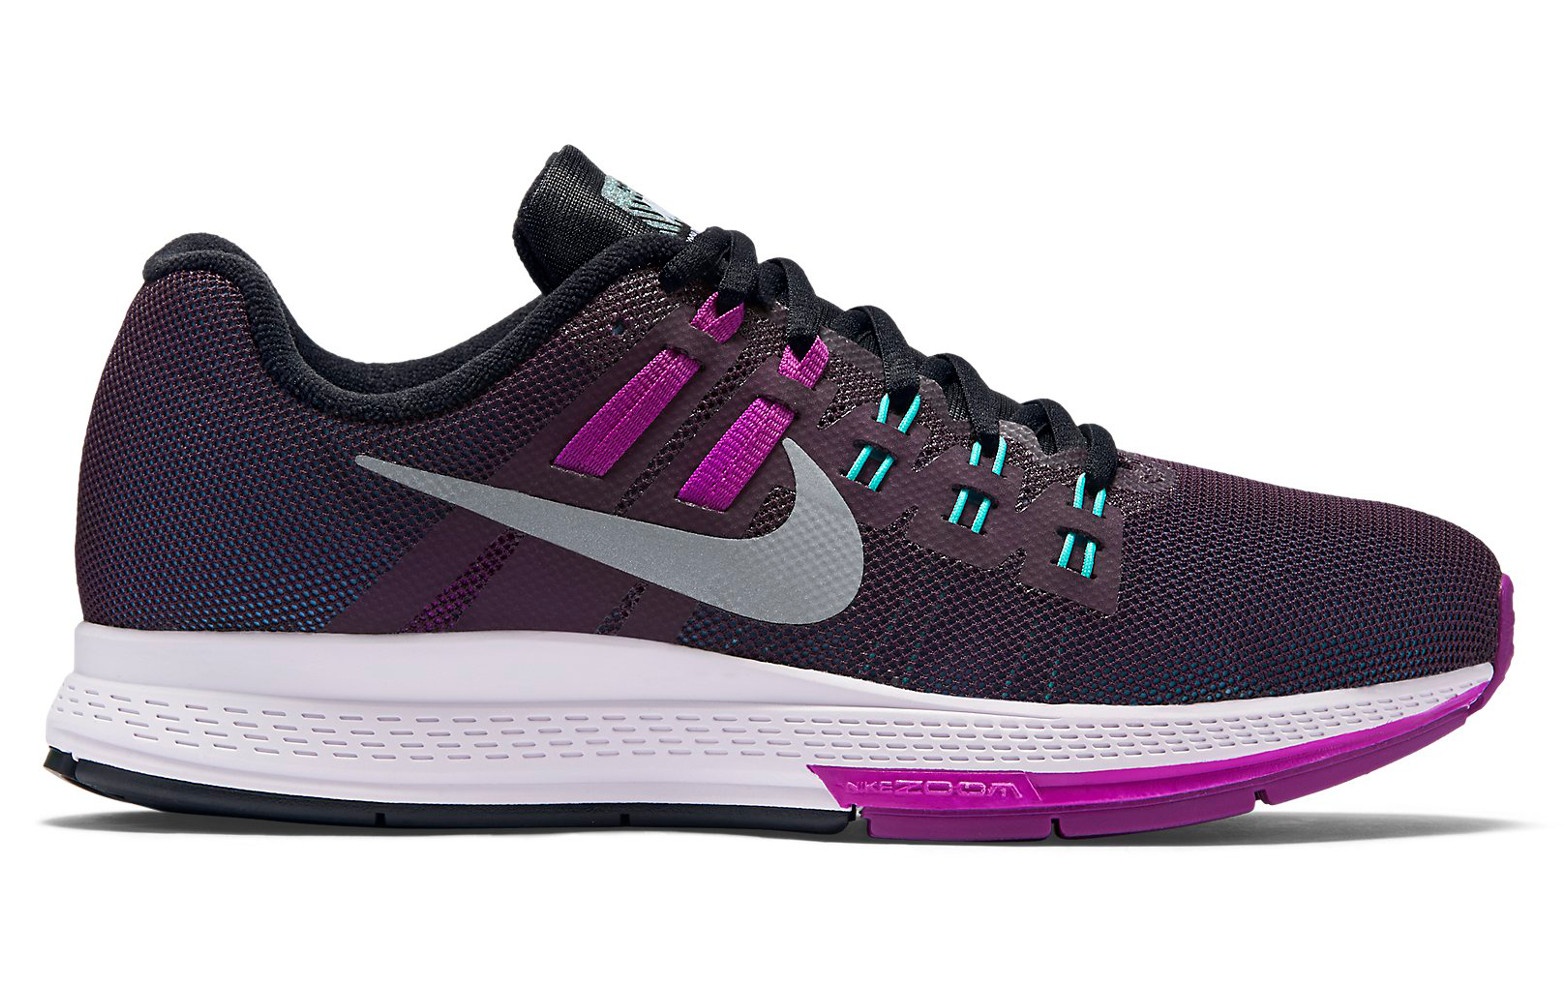 5eda312dd780 ... stability at unshakeably high speed 79c09 25926  australia nike shoes  air zoom structure 19 flash purple women 31f5c 608be